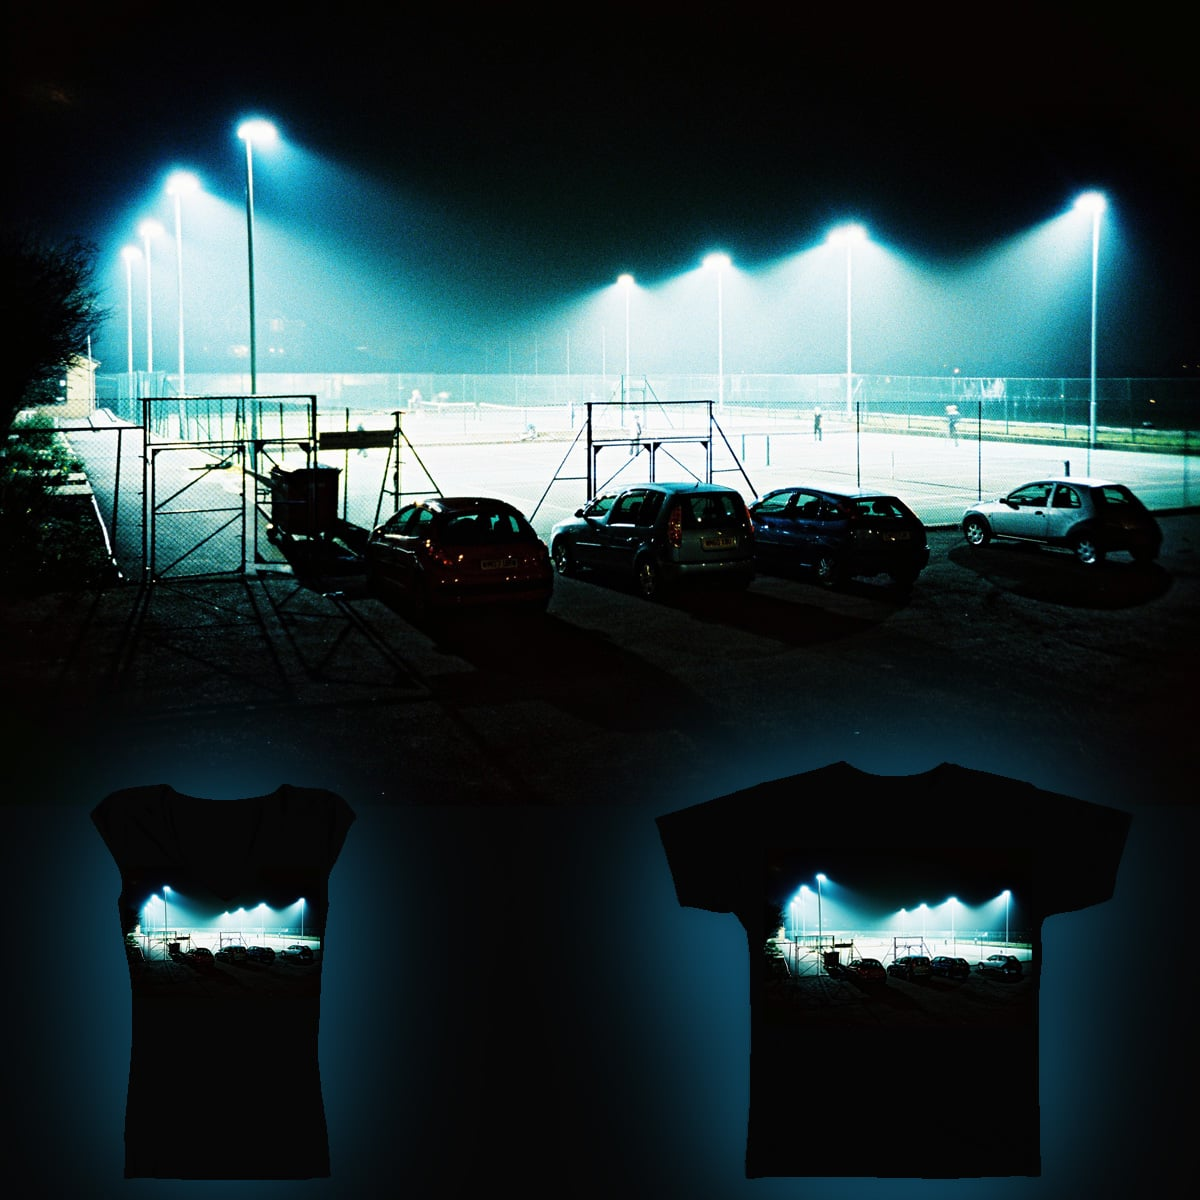 Court Of Dreams by UpstartThunder on Threadless